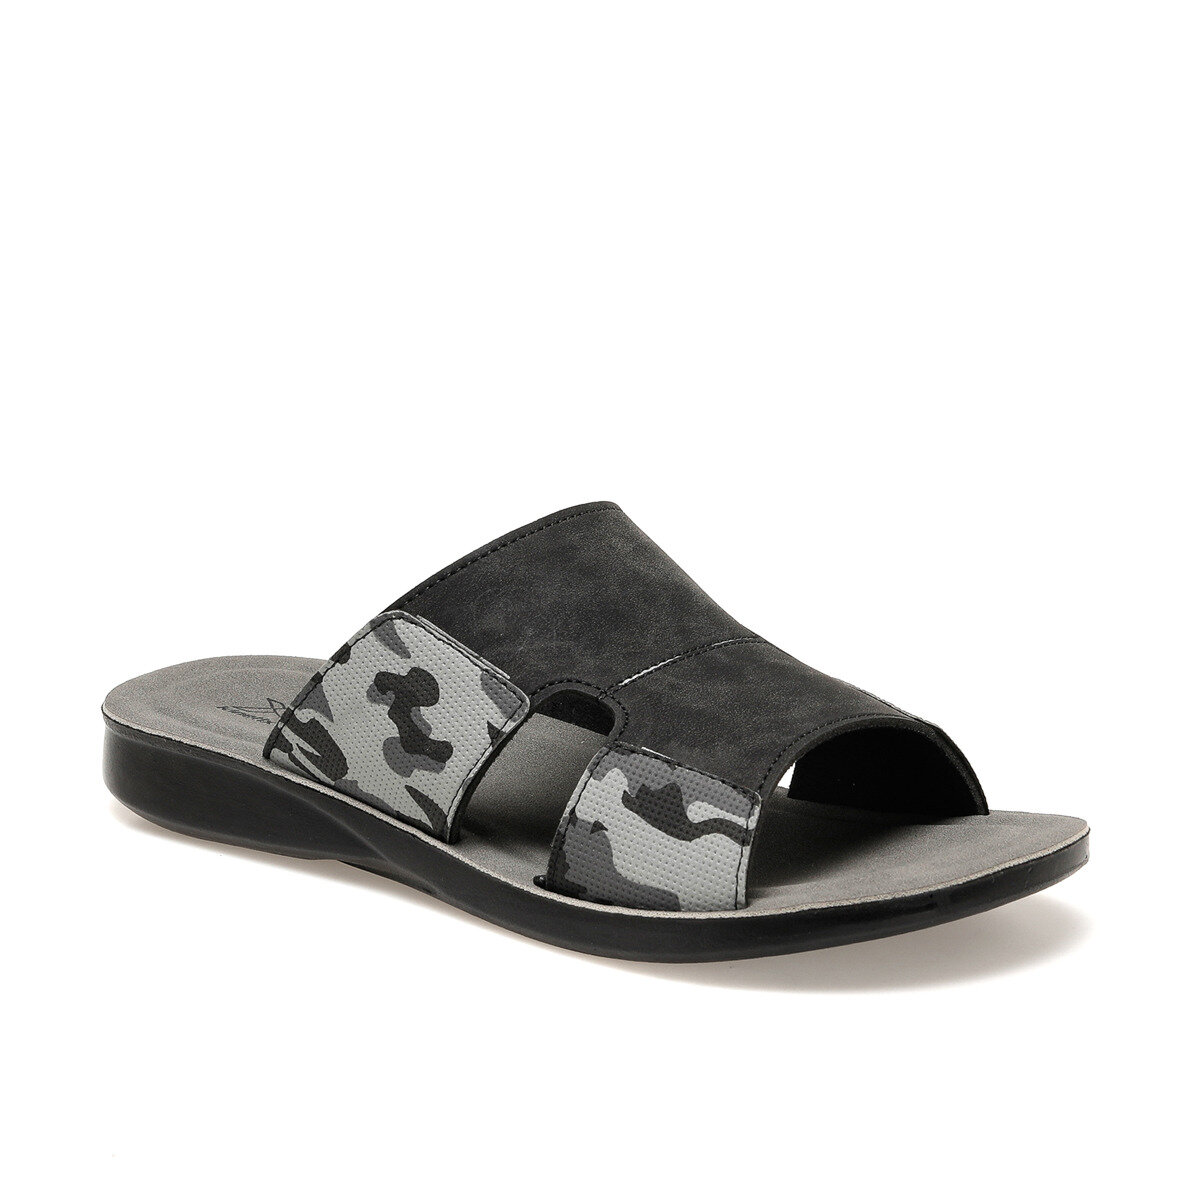 FLO RESTON Black Male Slippers KINETIX